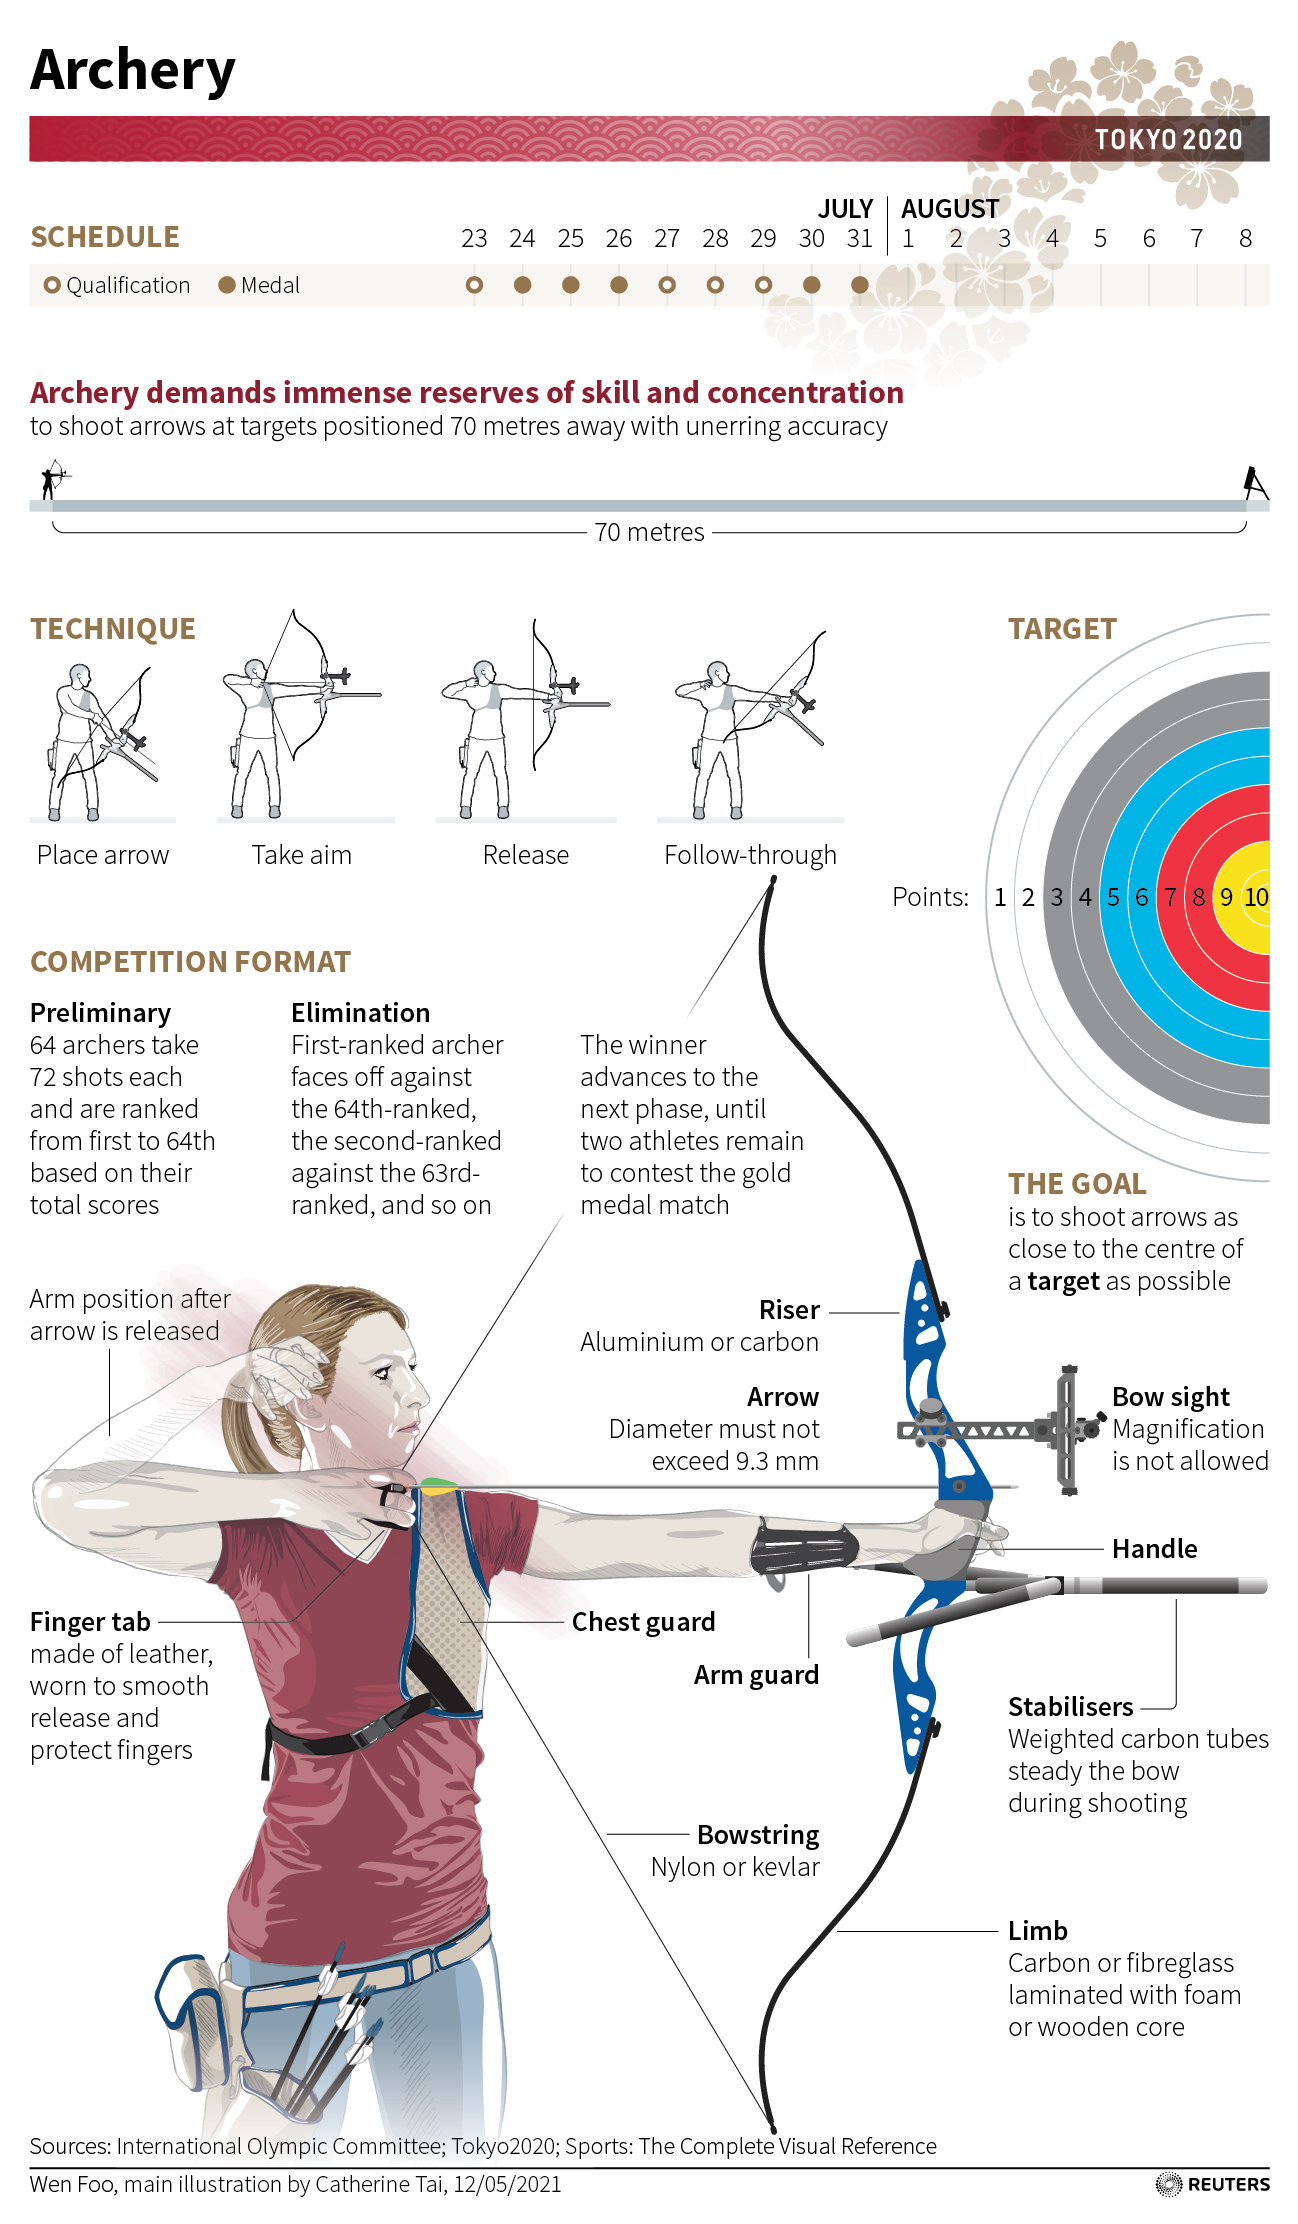 key facts about archery at the tokyo 2020 games | reuters  reuters